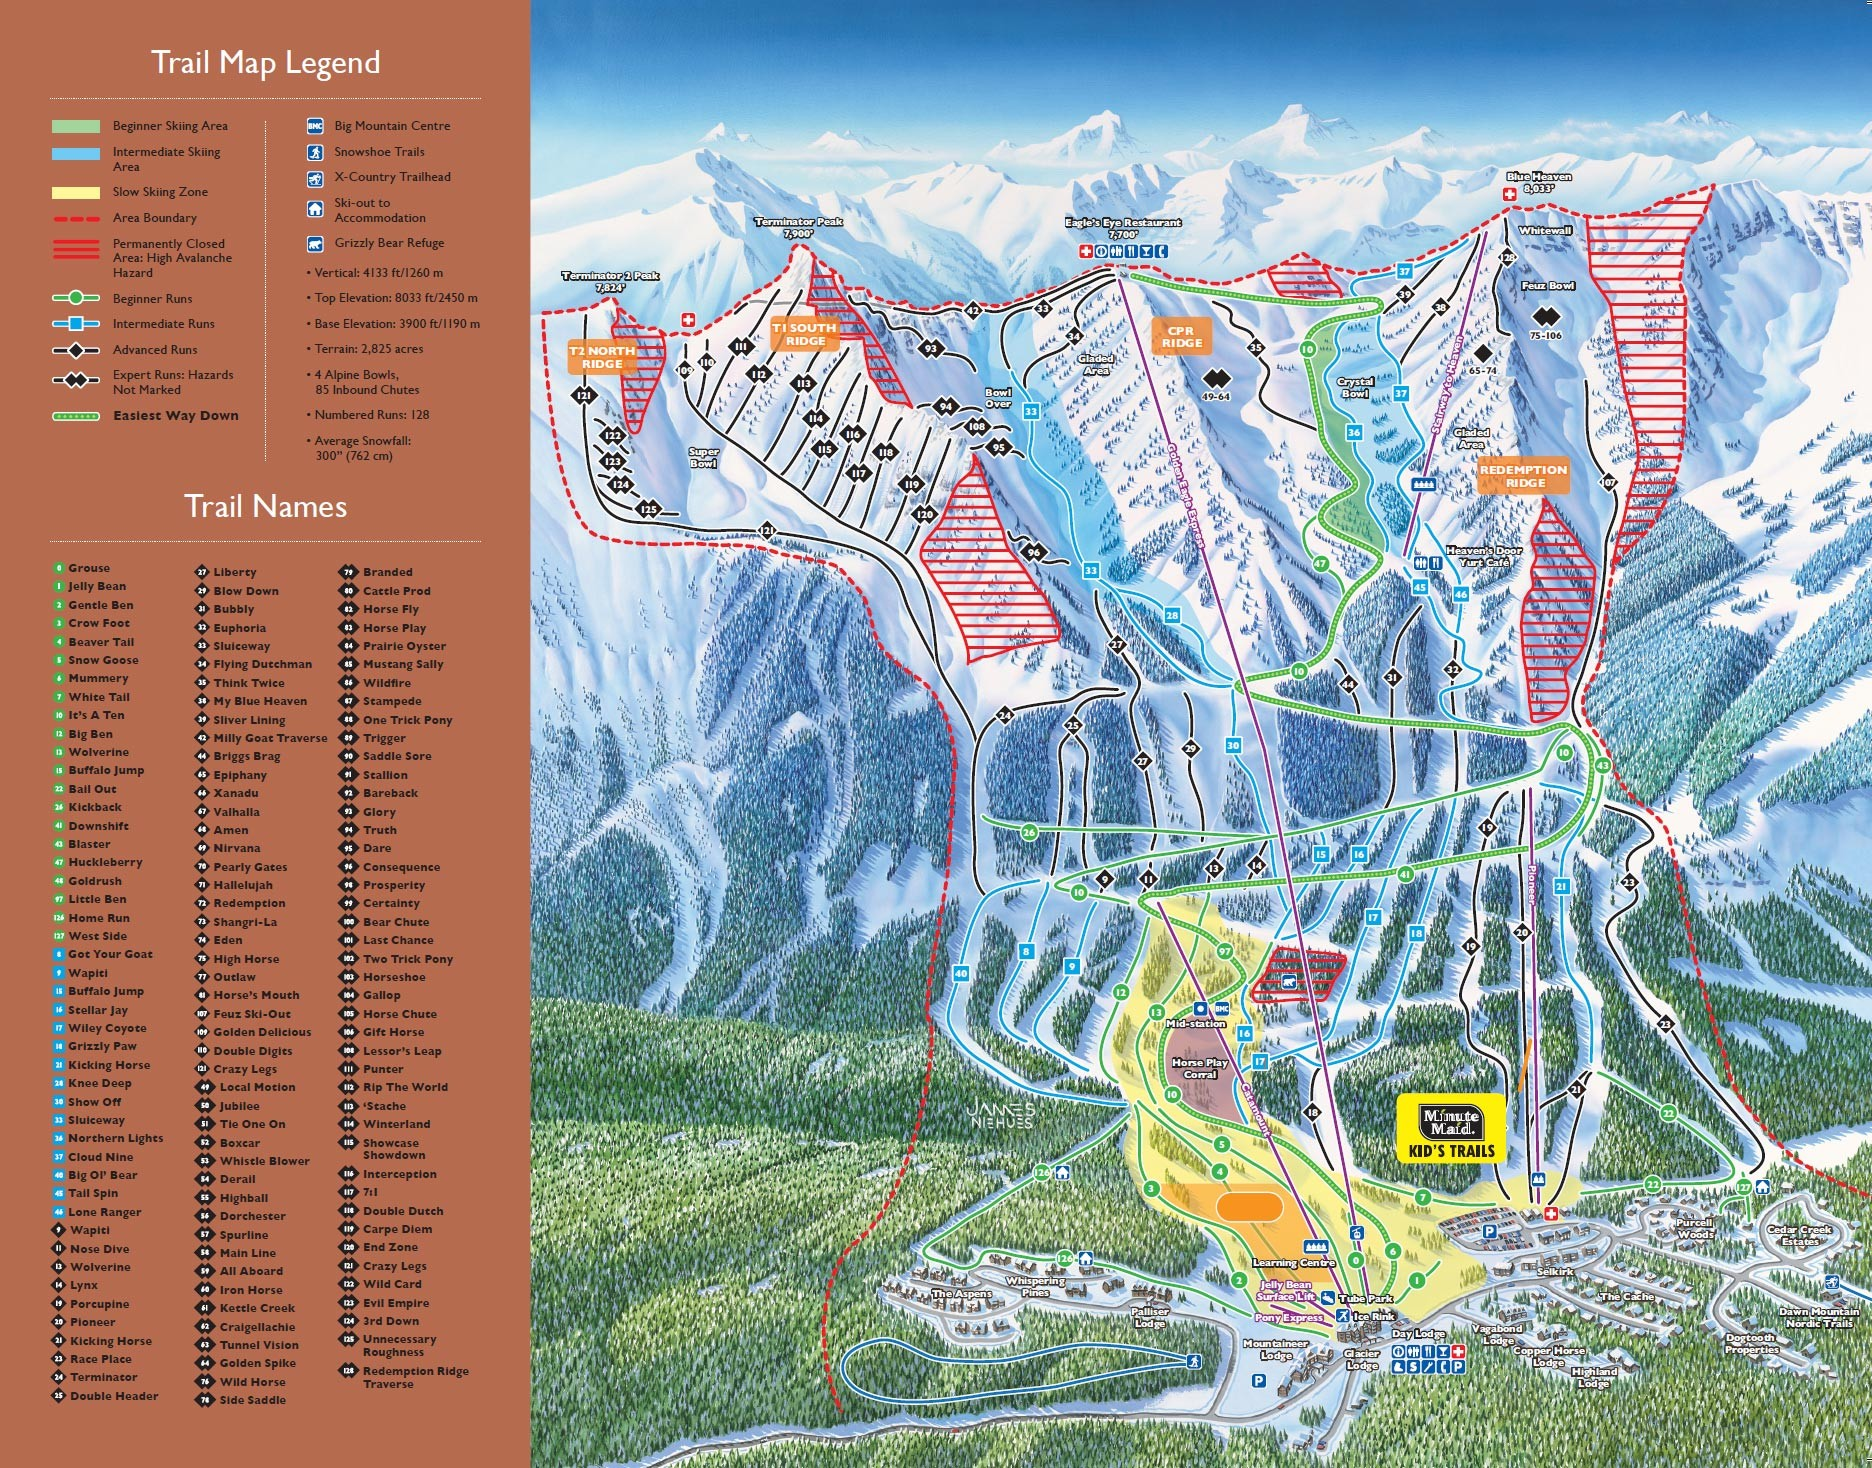 Pistenplan von Kicking Horse Resort